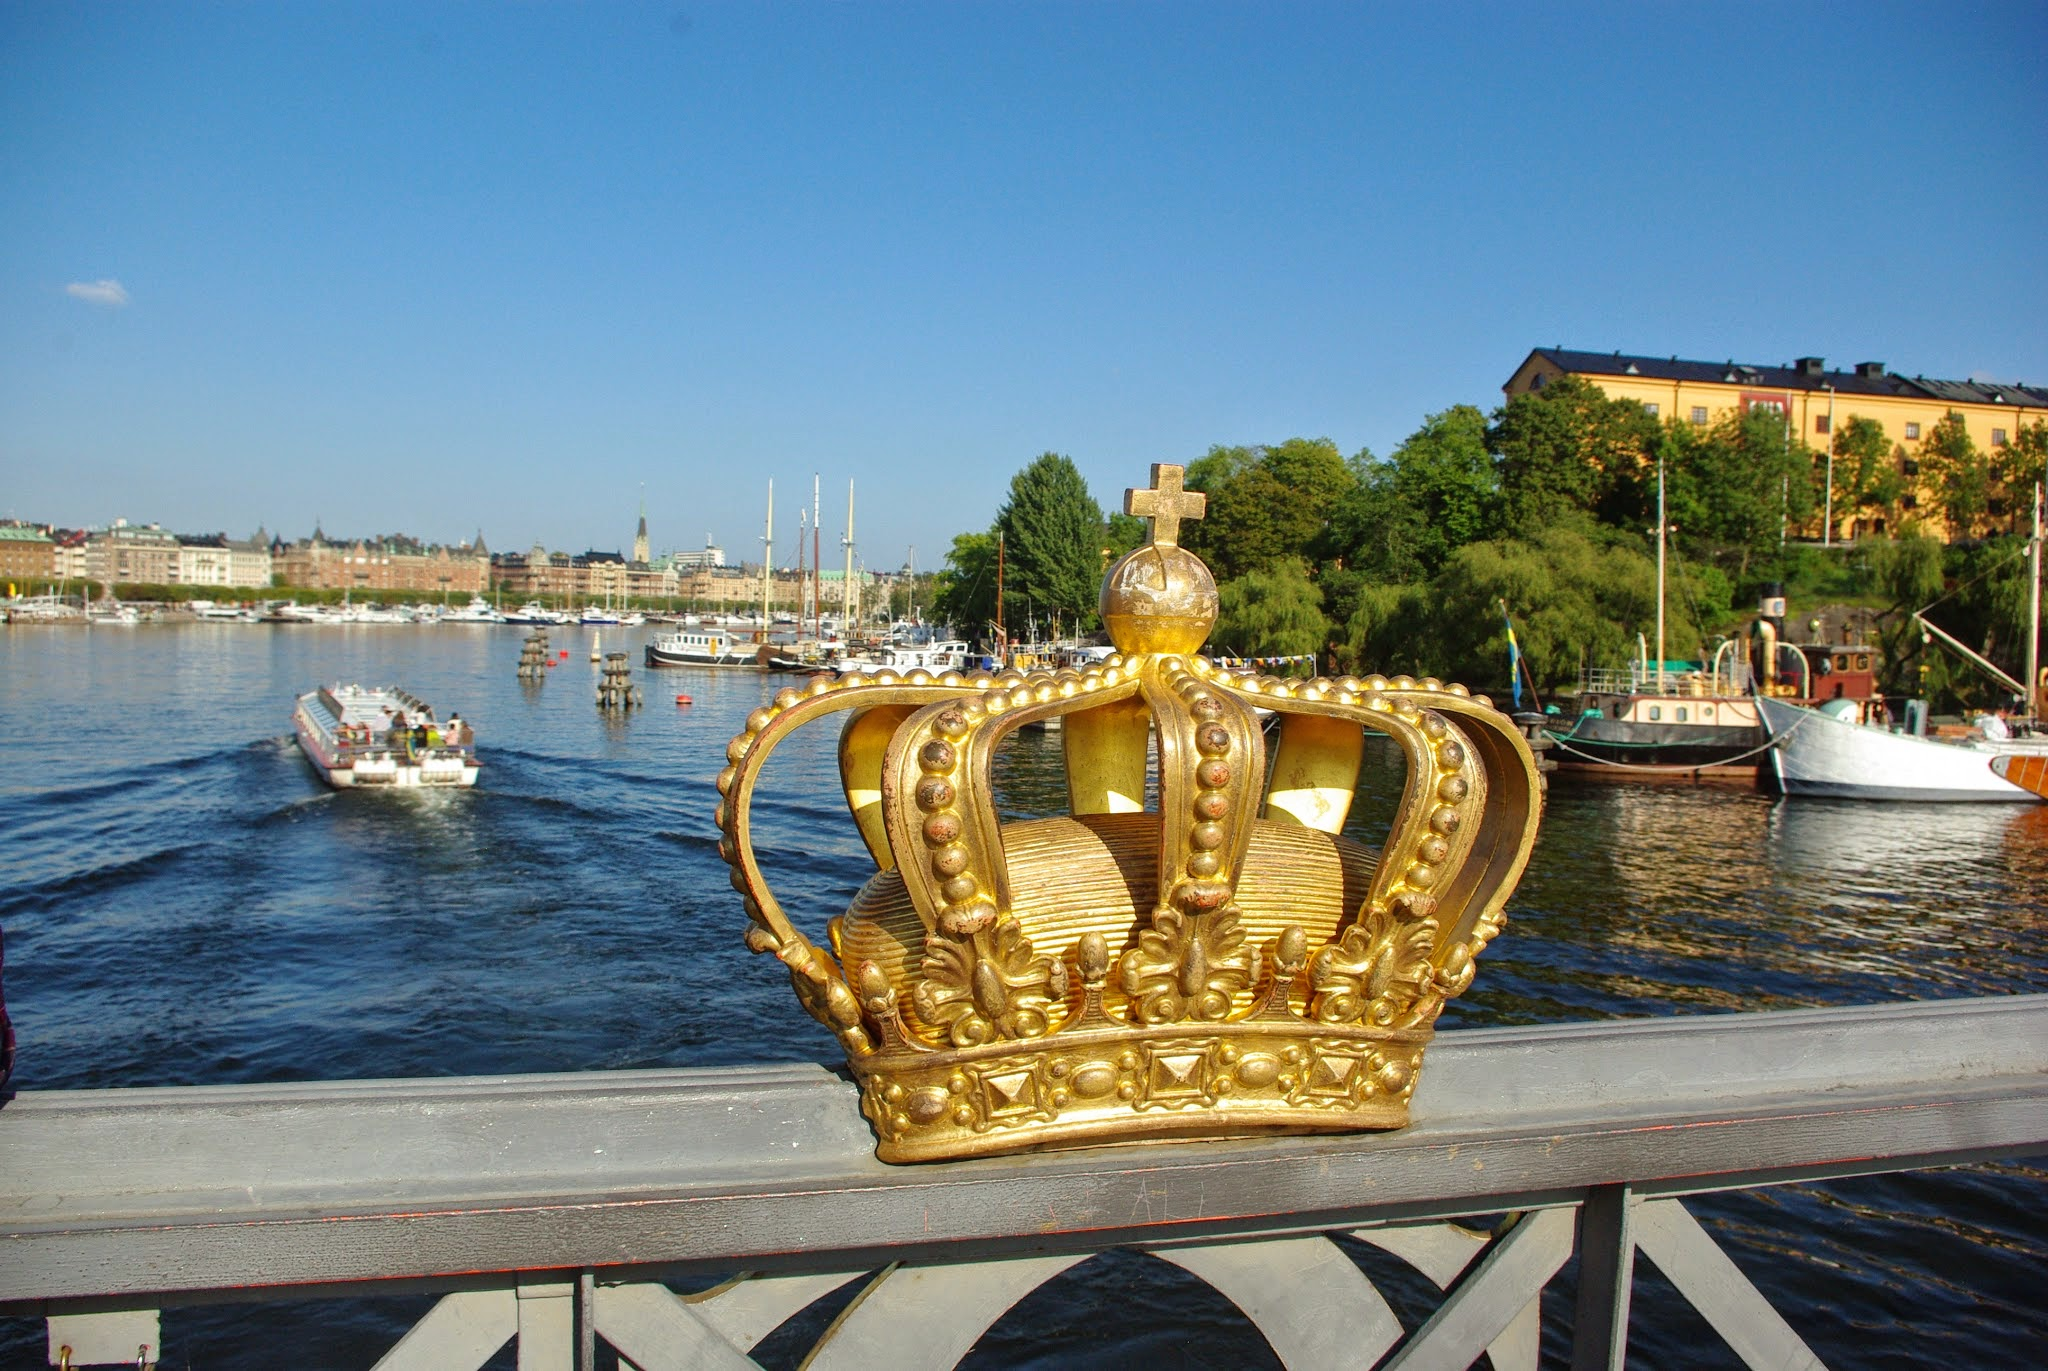 Weird dormmates aside, Stockholm is one of my favorite cities in Europe.